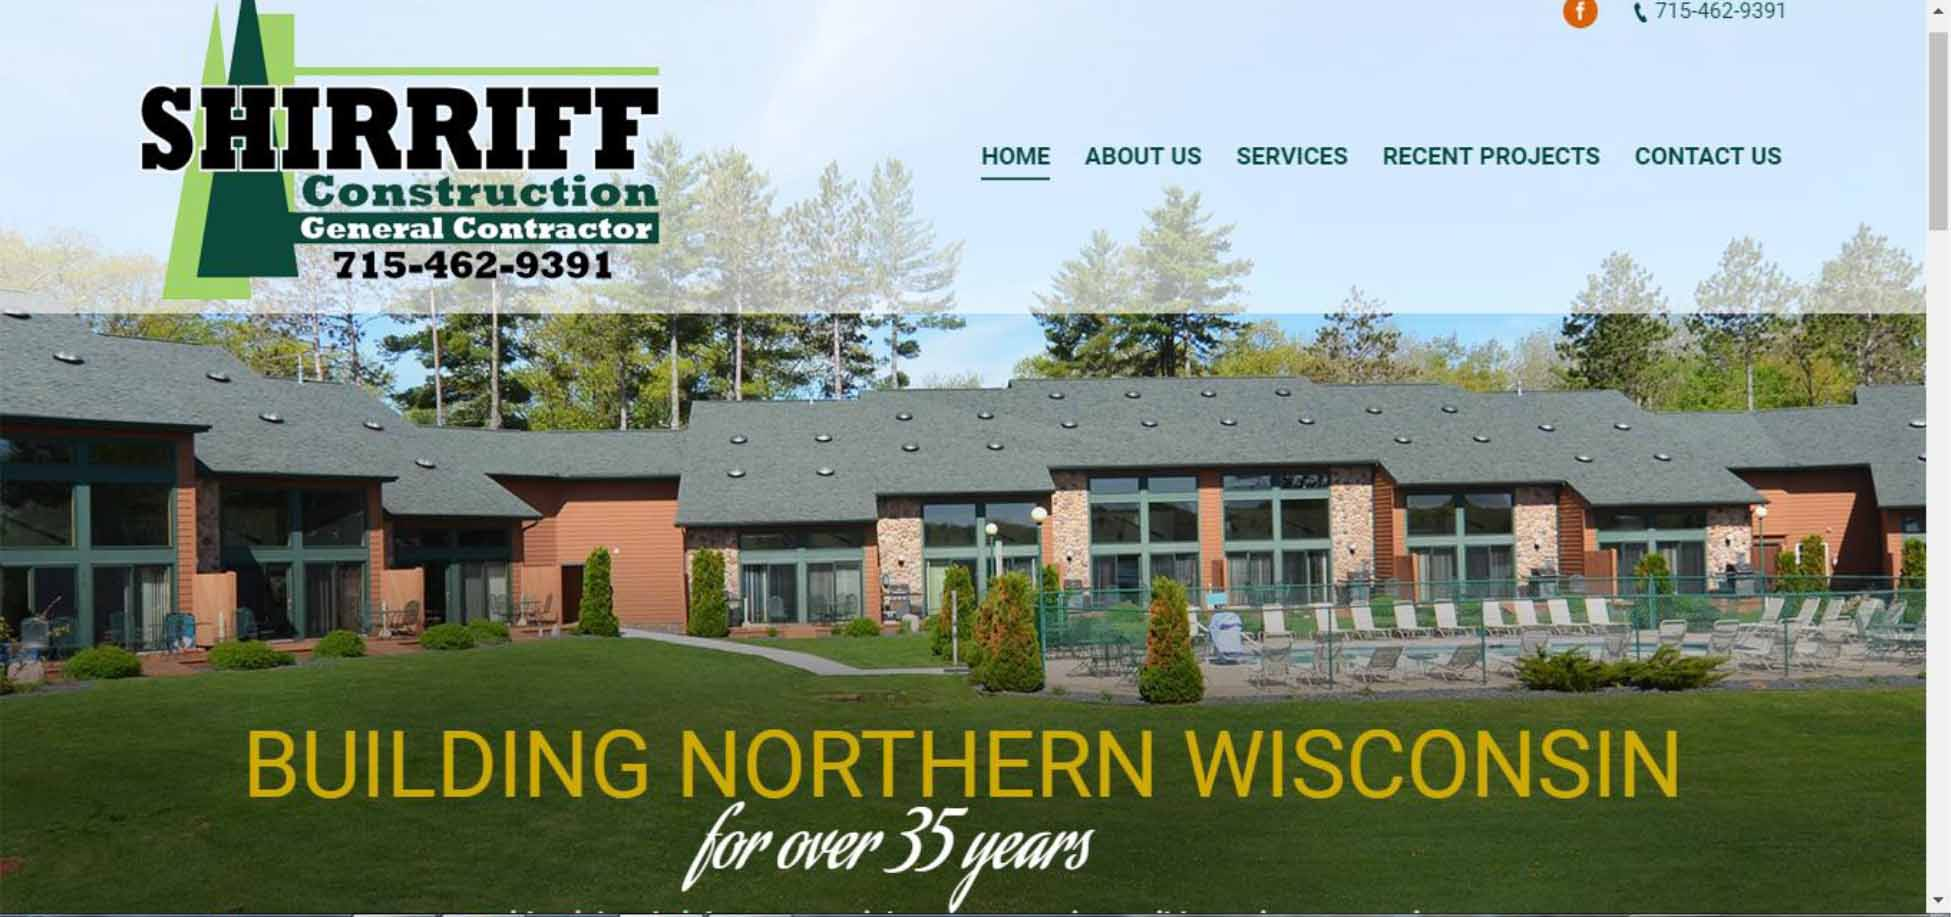 Web Site Development For Shirriff Construction Hayward